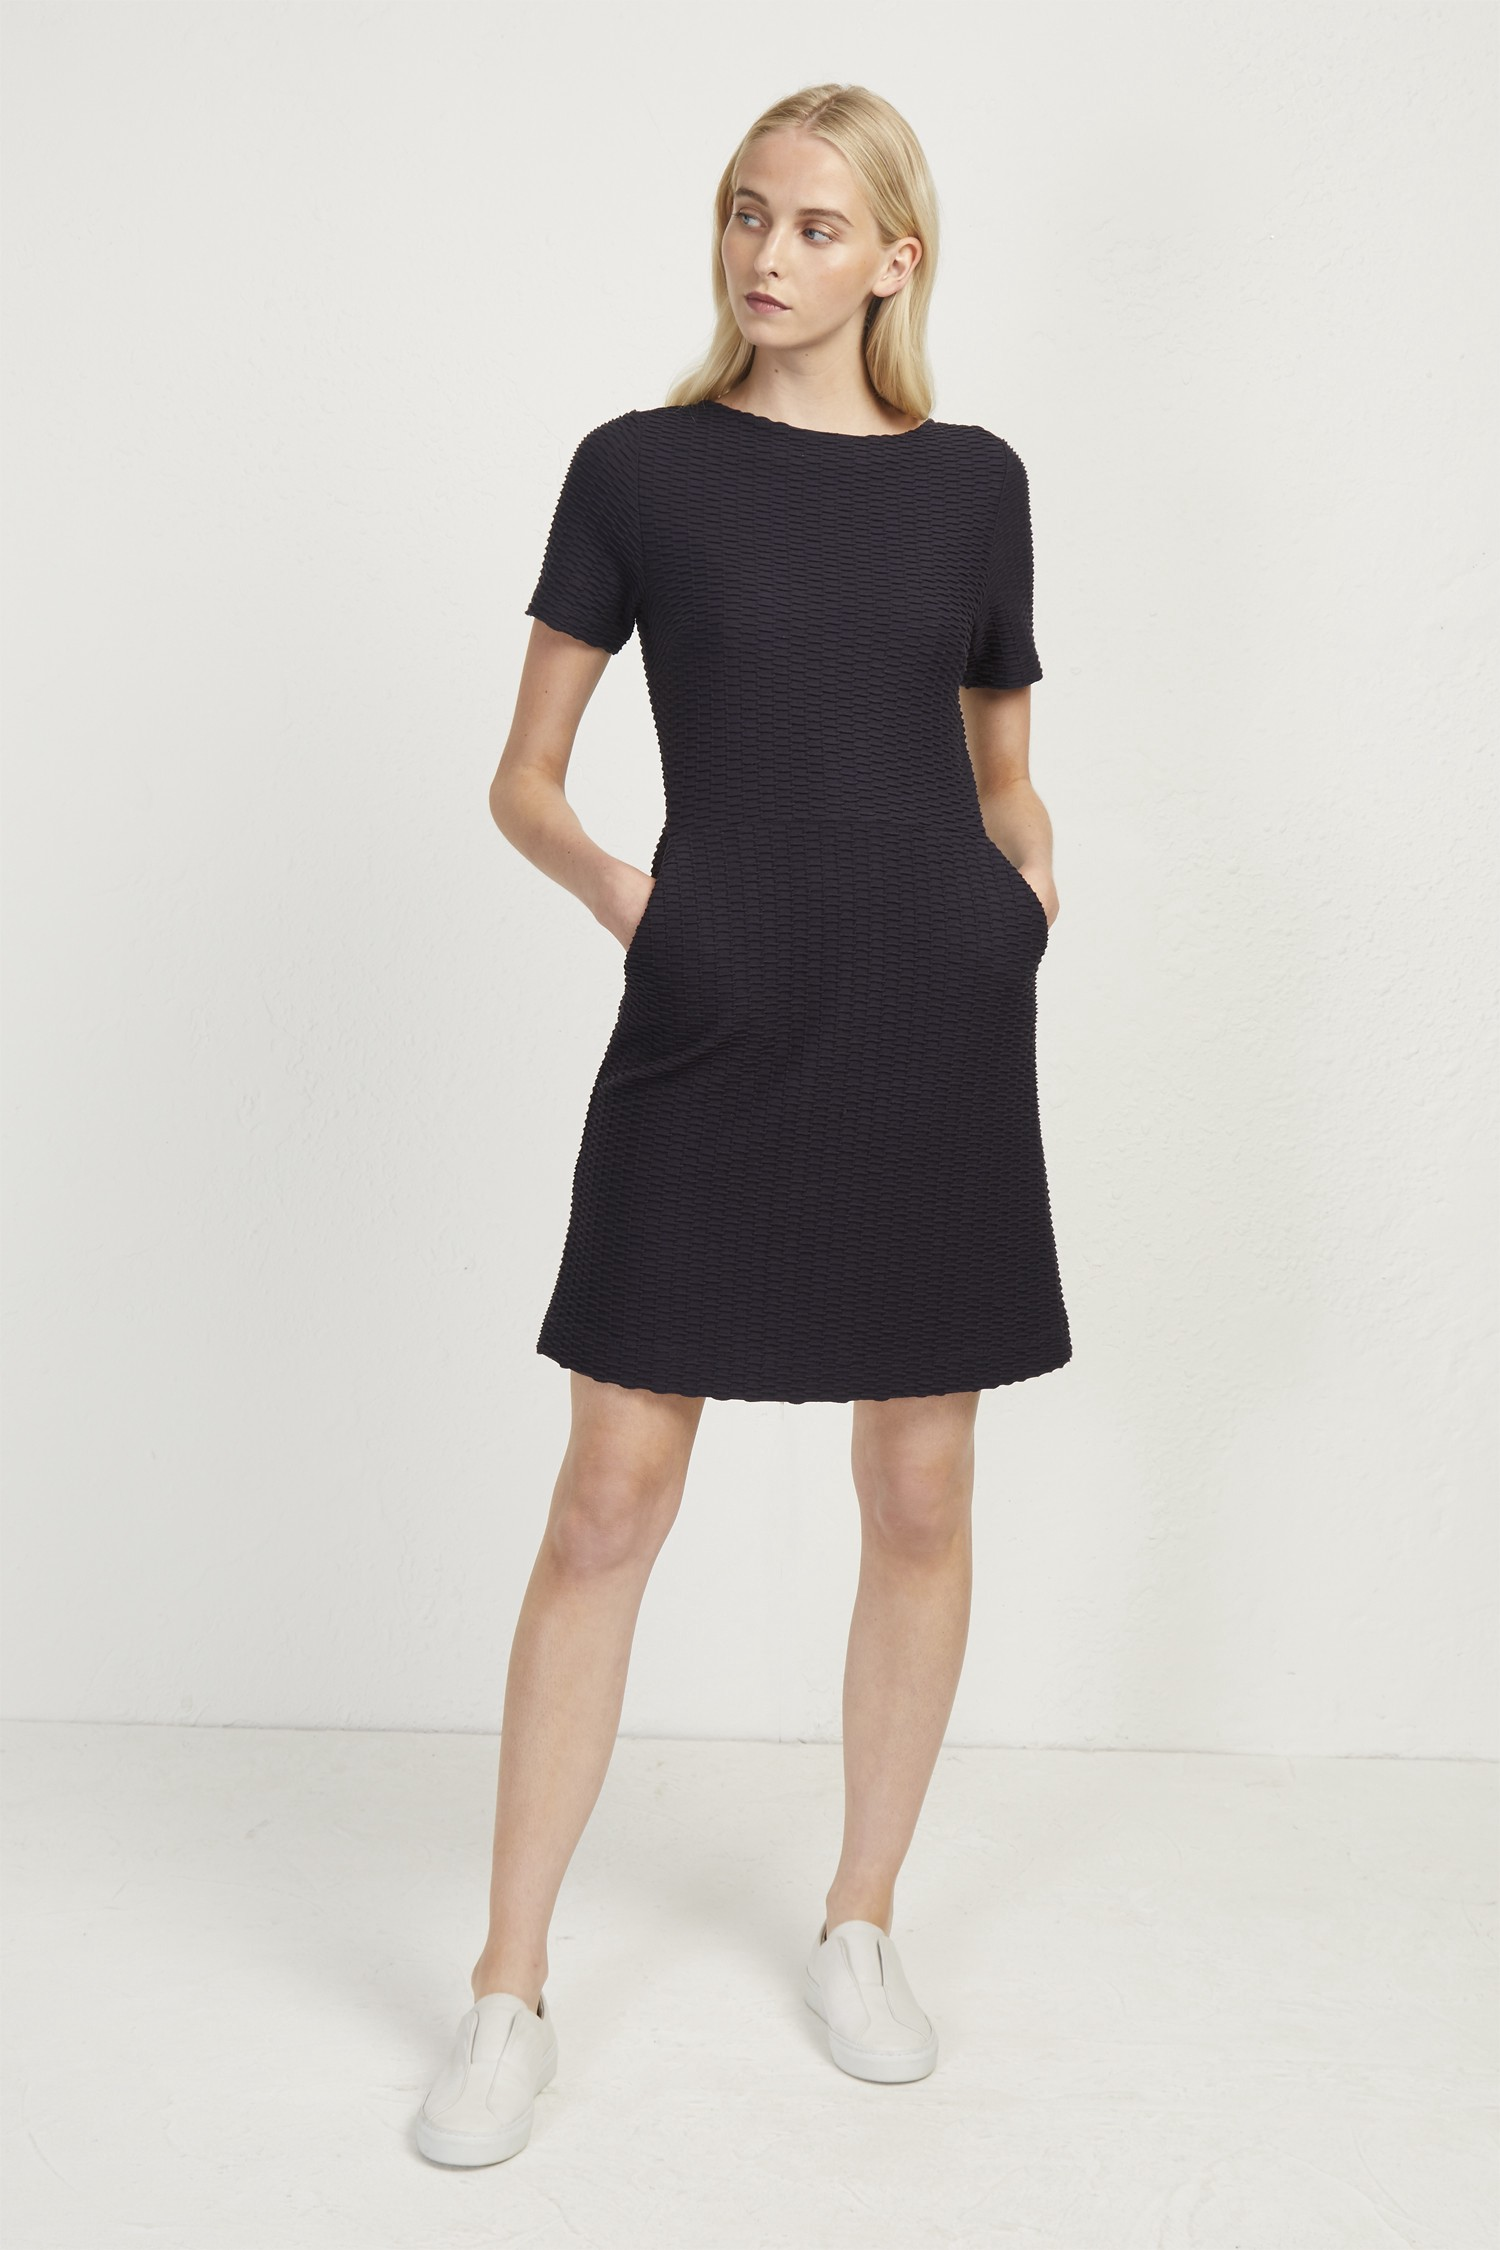 47708203f3 French Connection Pixie Texture Dress - Charcoal Mel 10